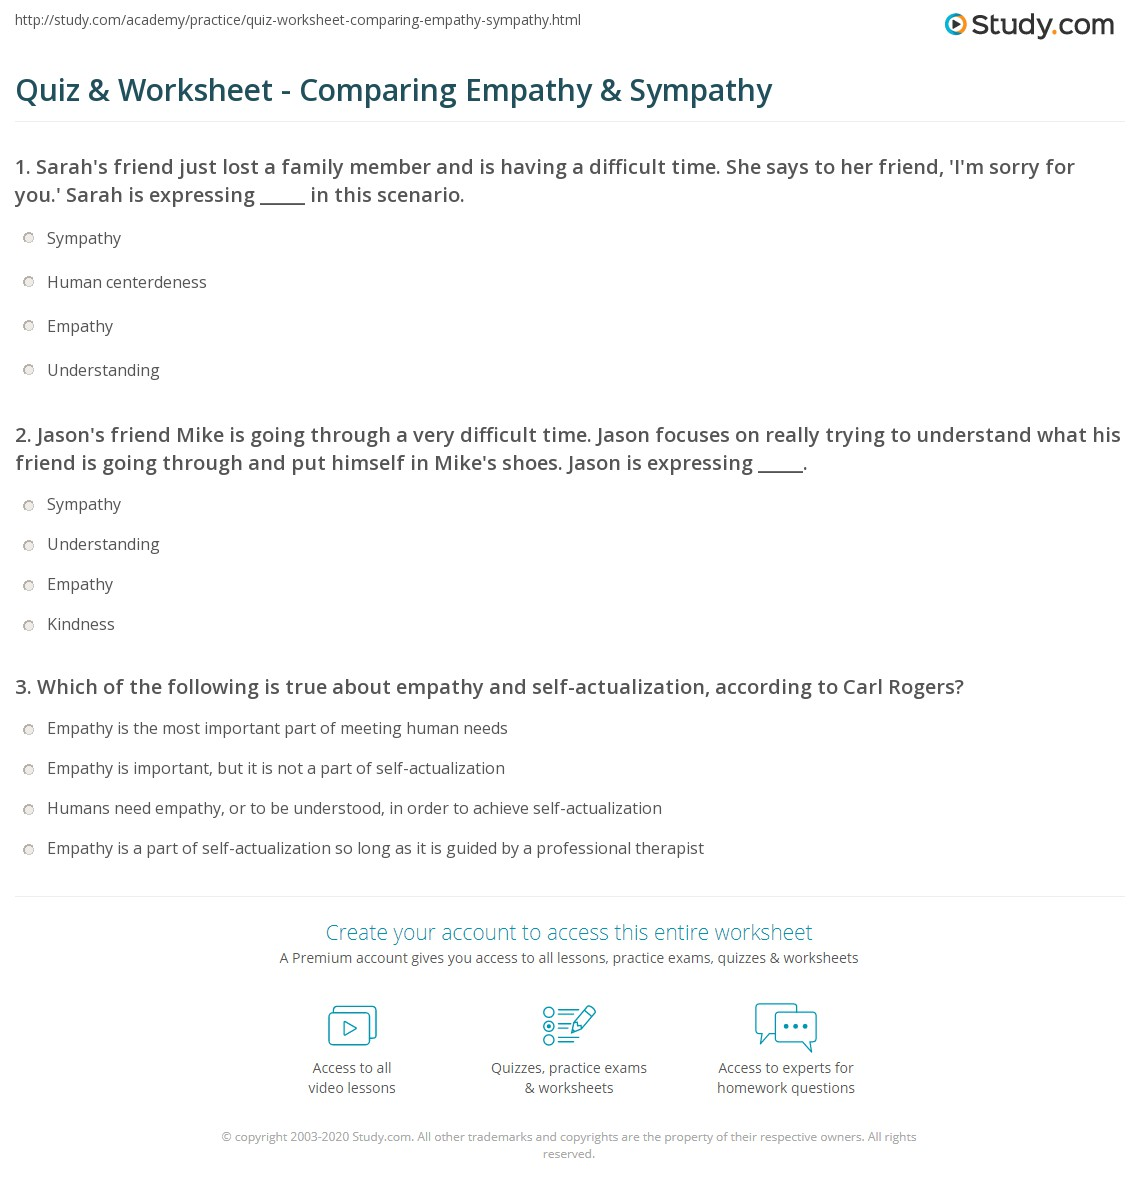 Free Worksheet Empathy Worksheets quiz worksheet comparing empathy sympathy study com 1 jasons friend mike is going through a very difficult time jason focuses on really trying to understand what his throug